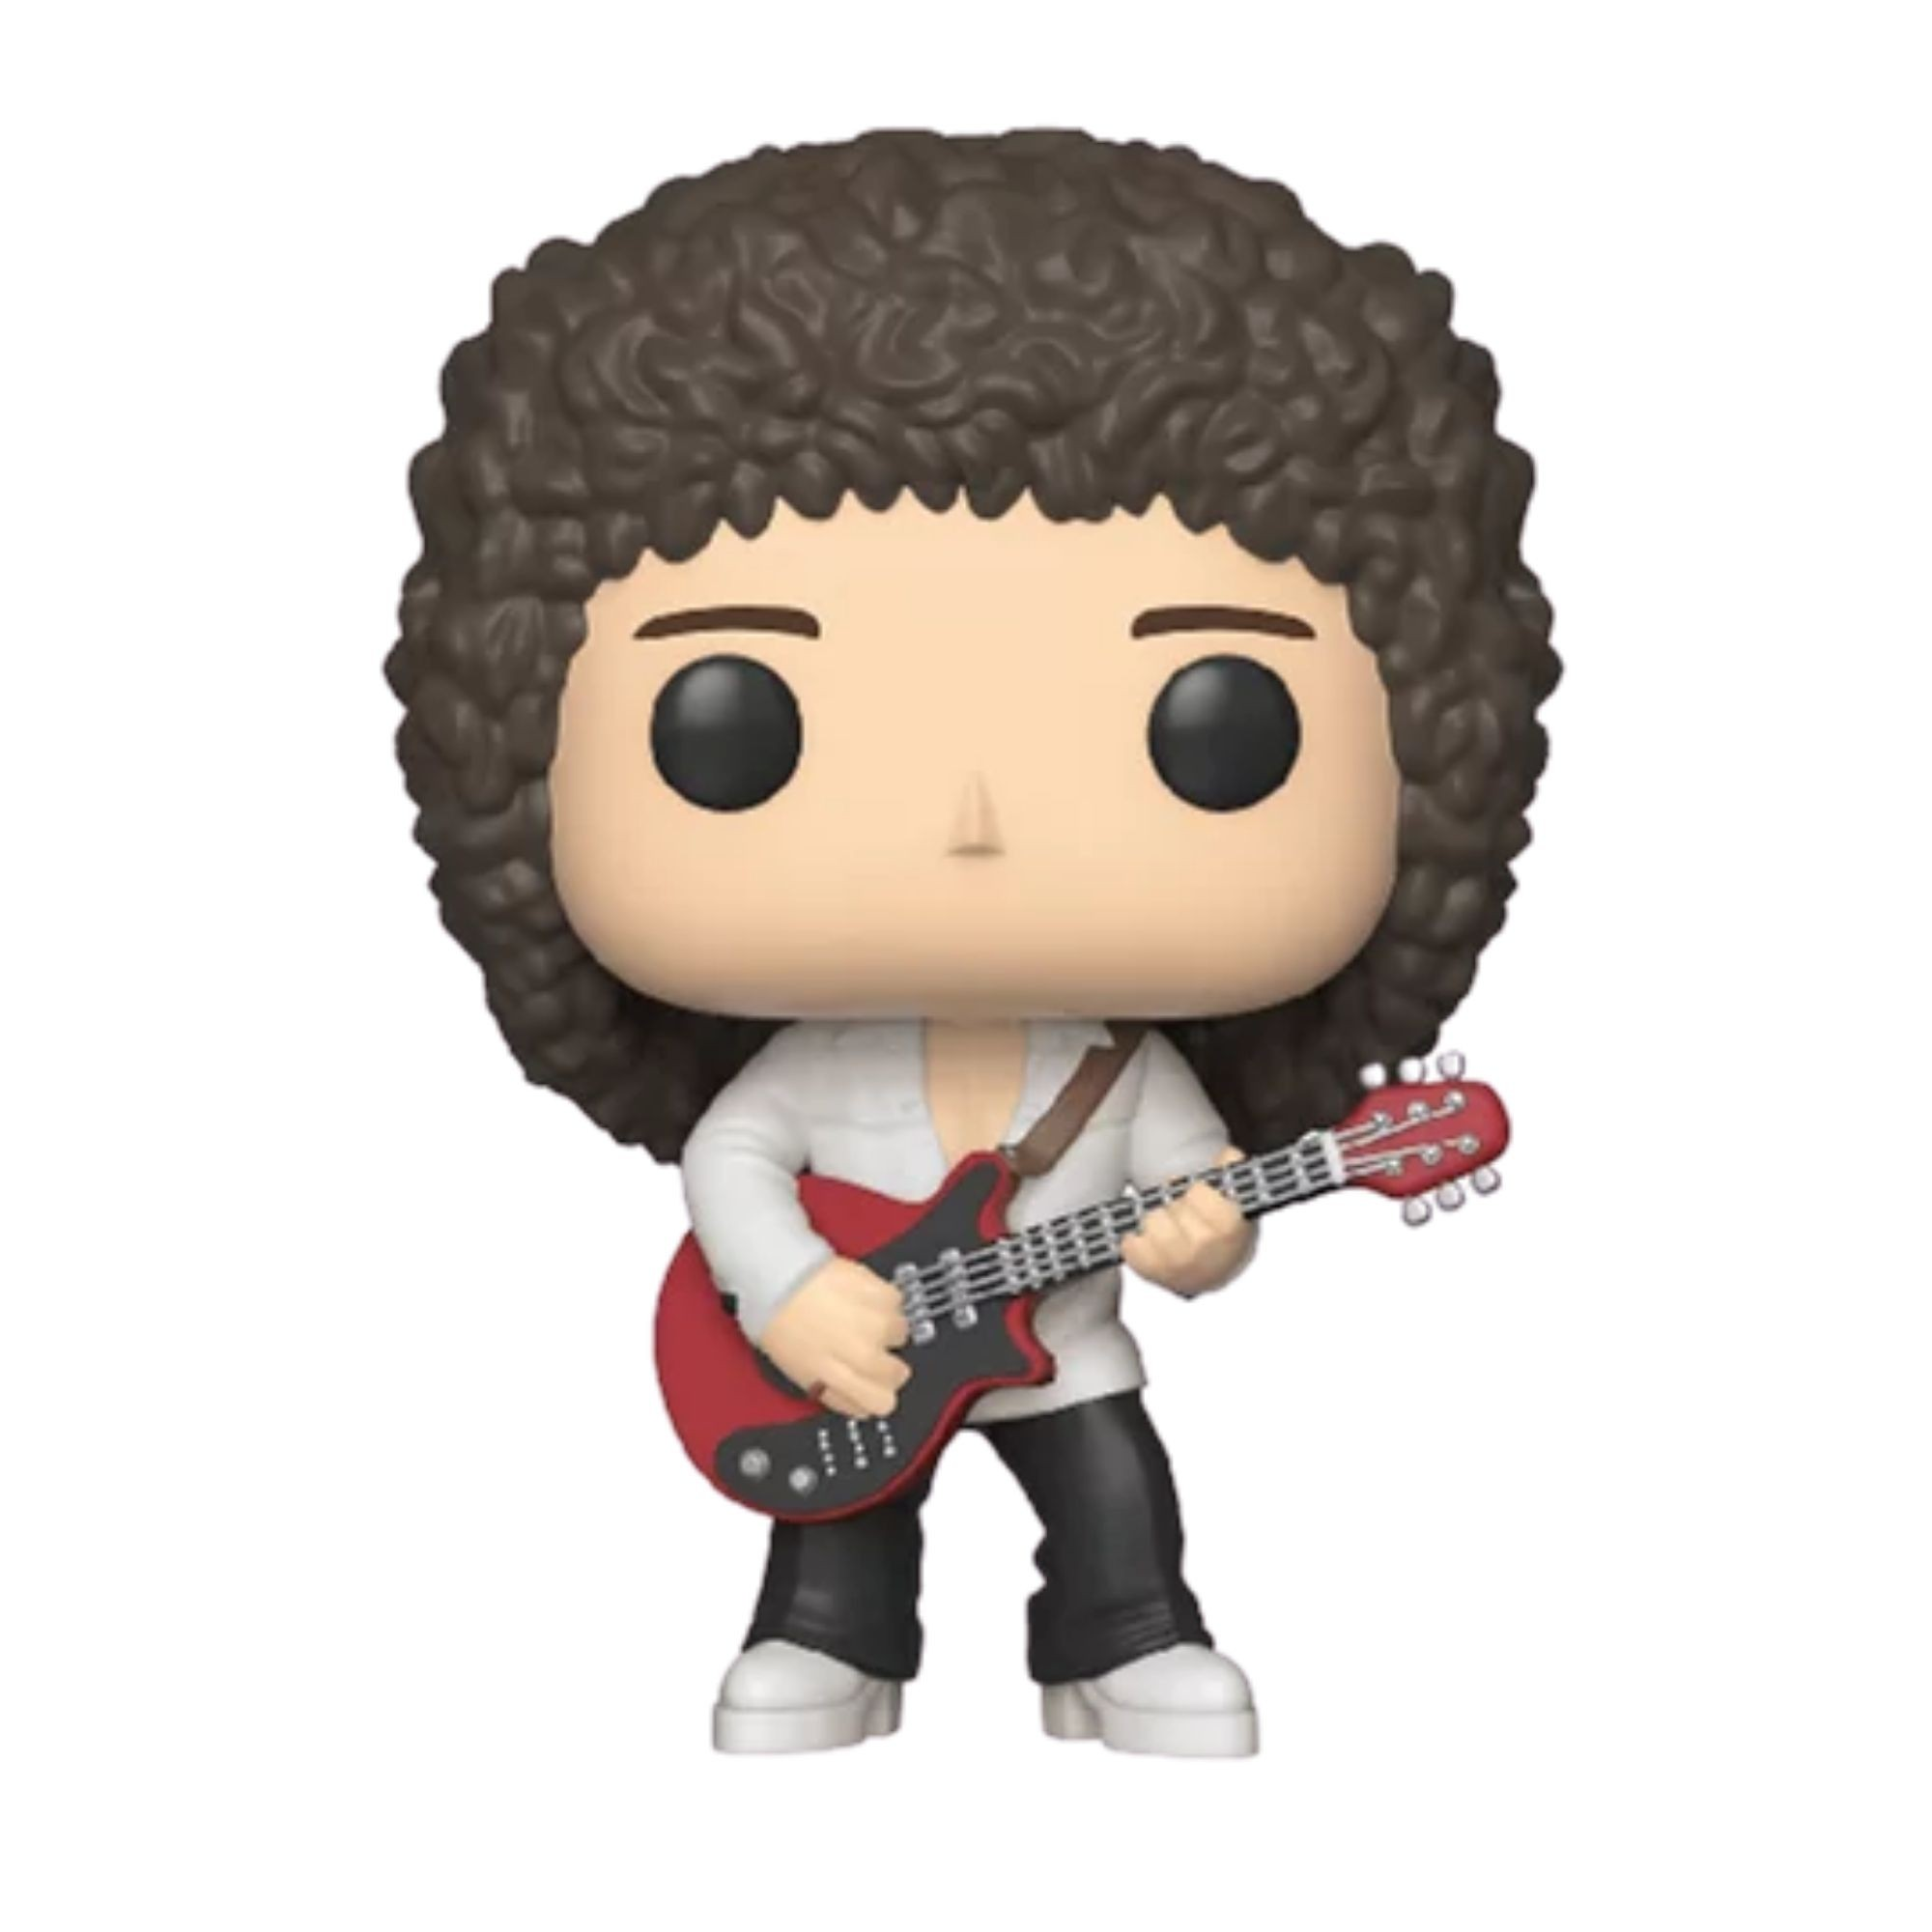 Funko Pop Rocks Queen Brian May #93  - Game Land Brinquedos